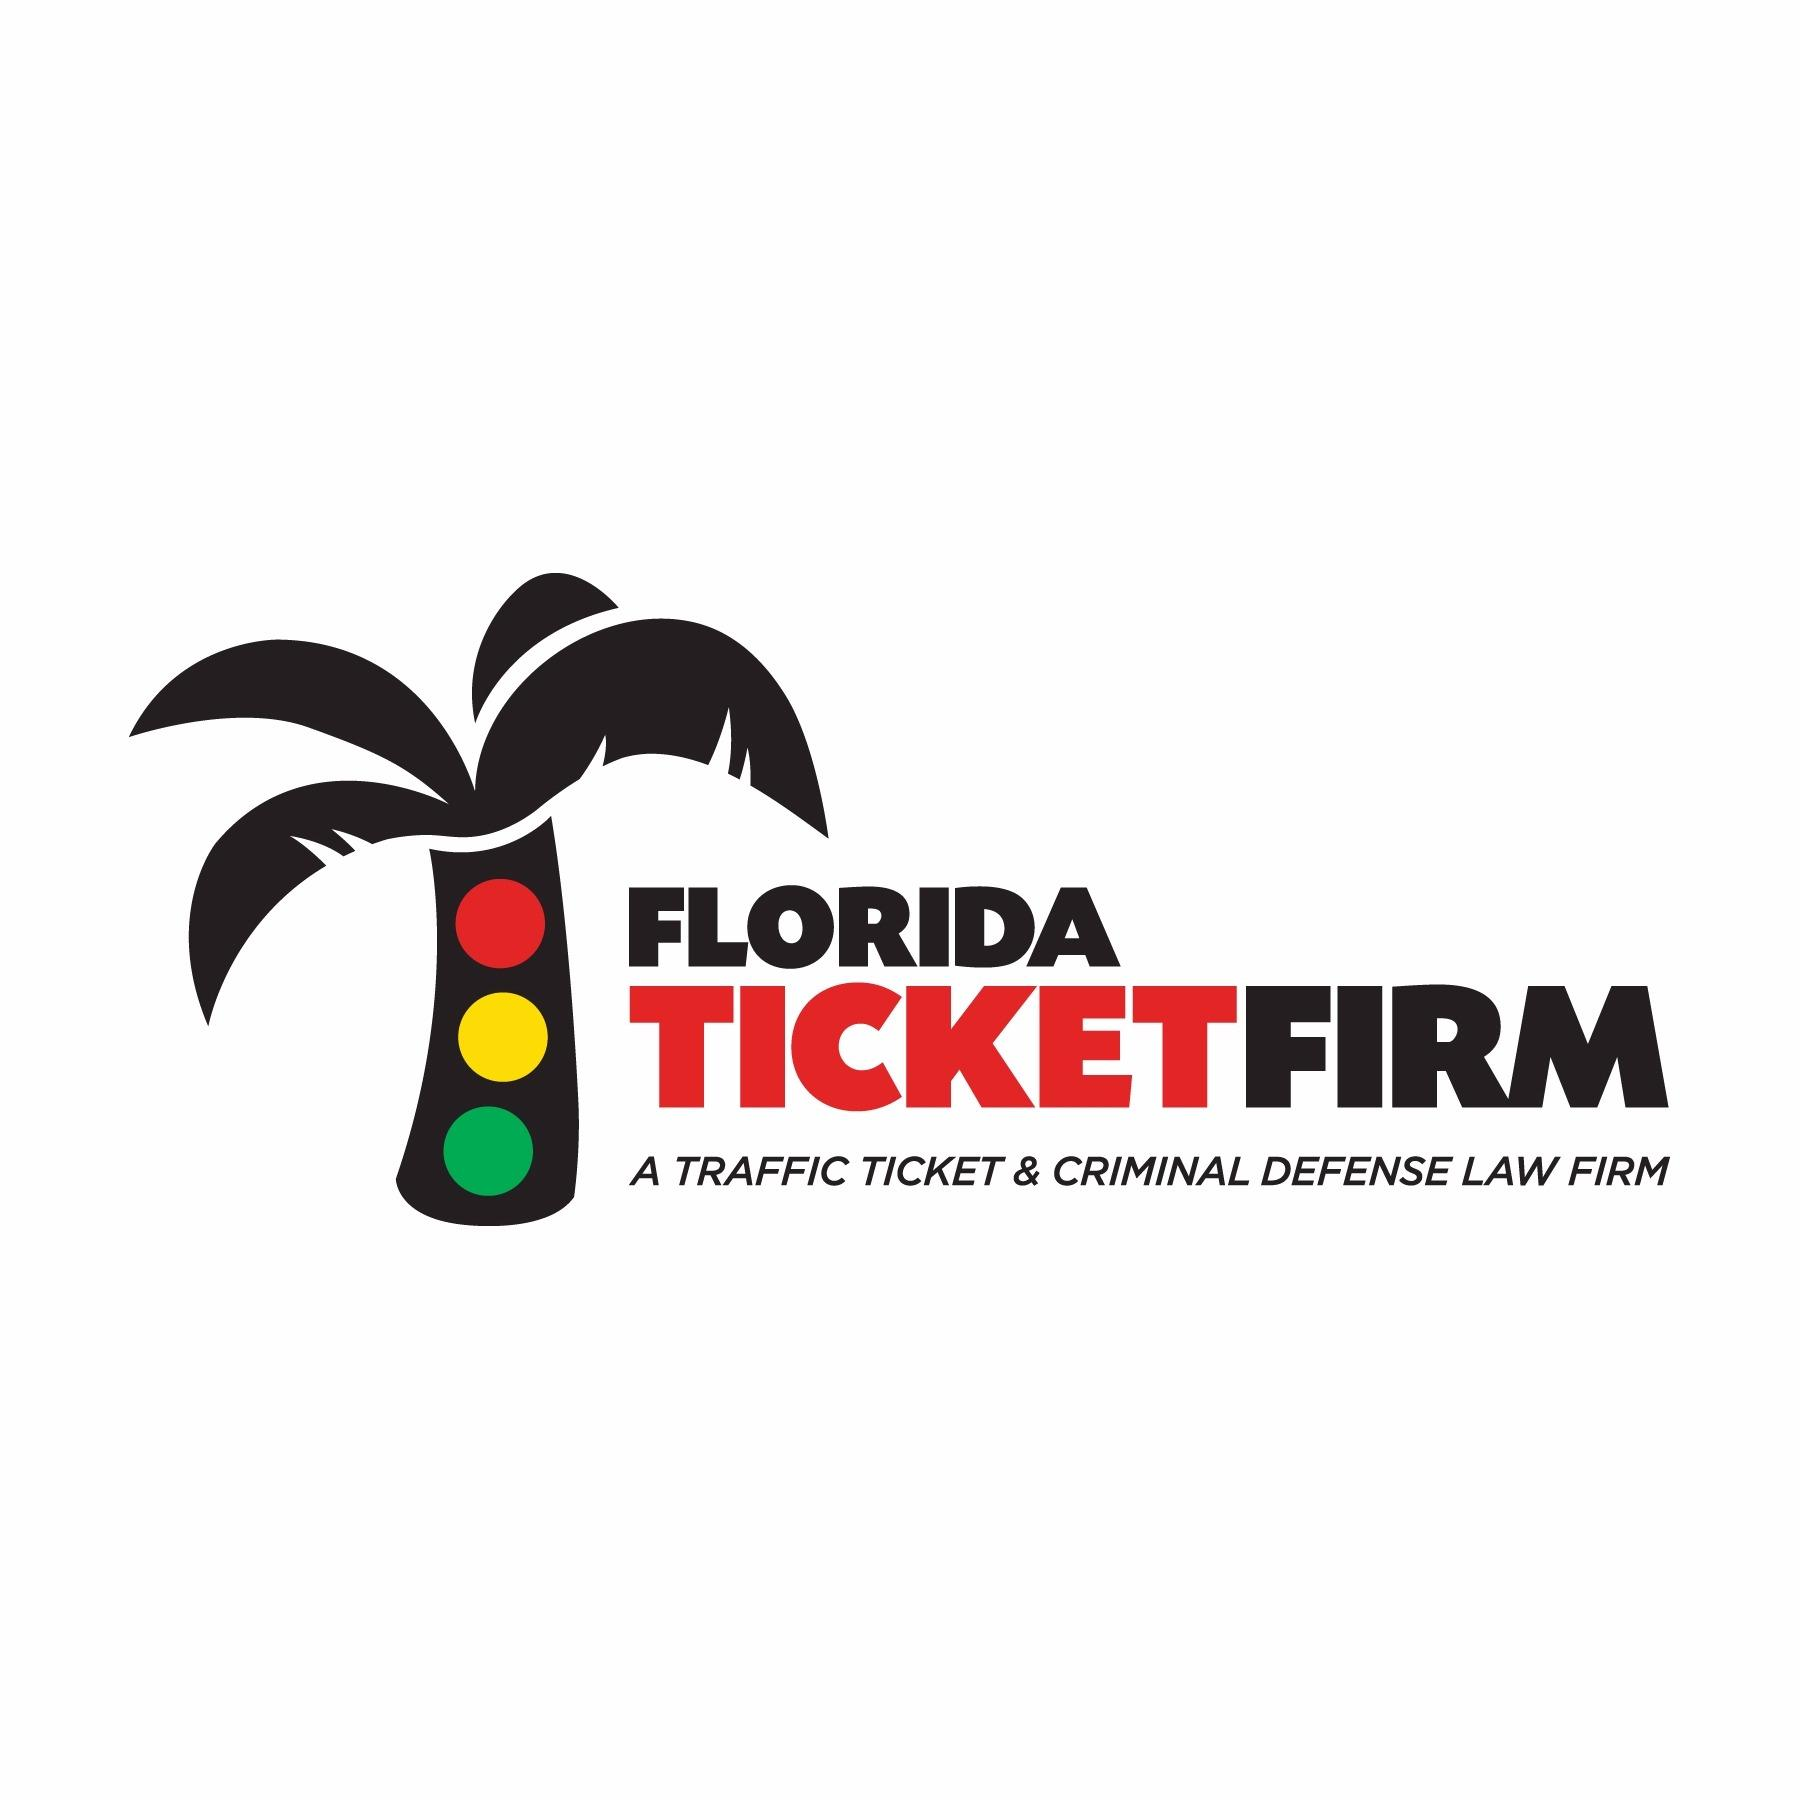 Florida Ticket Firm image 3